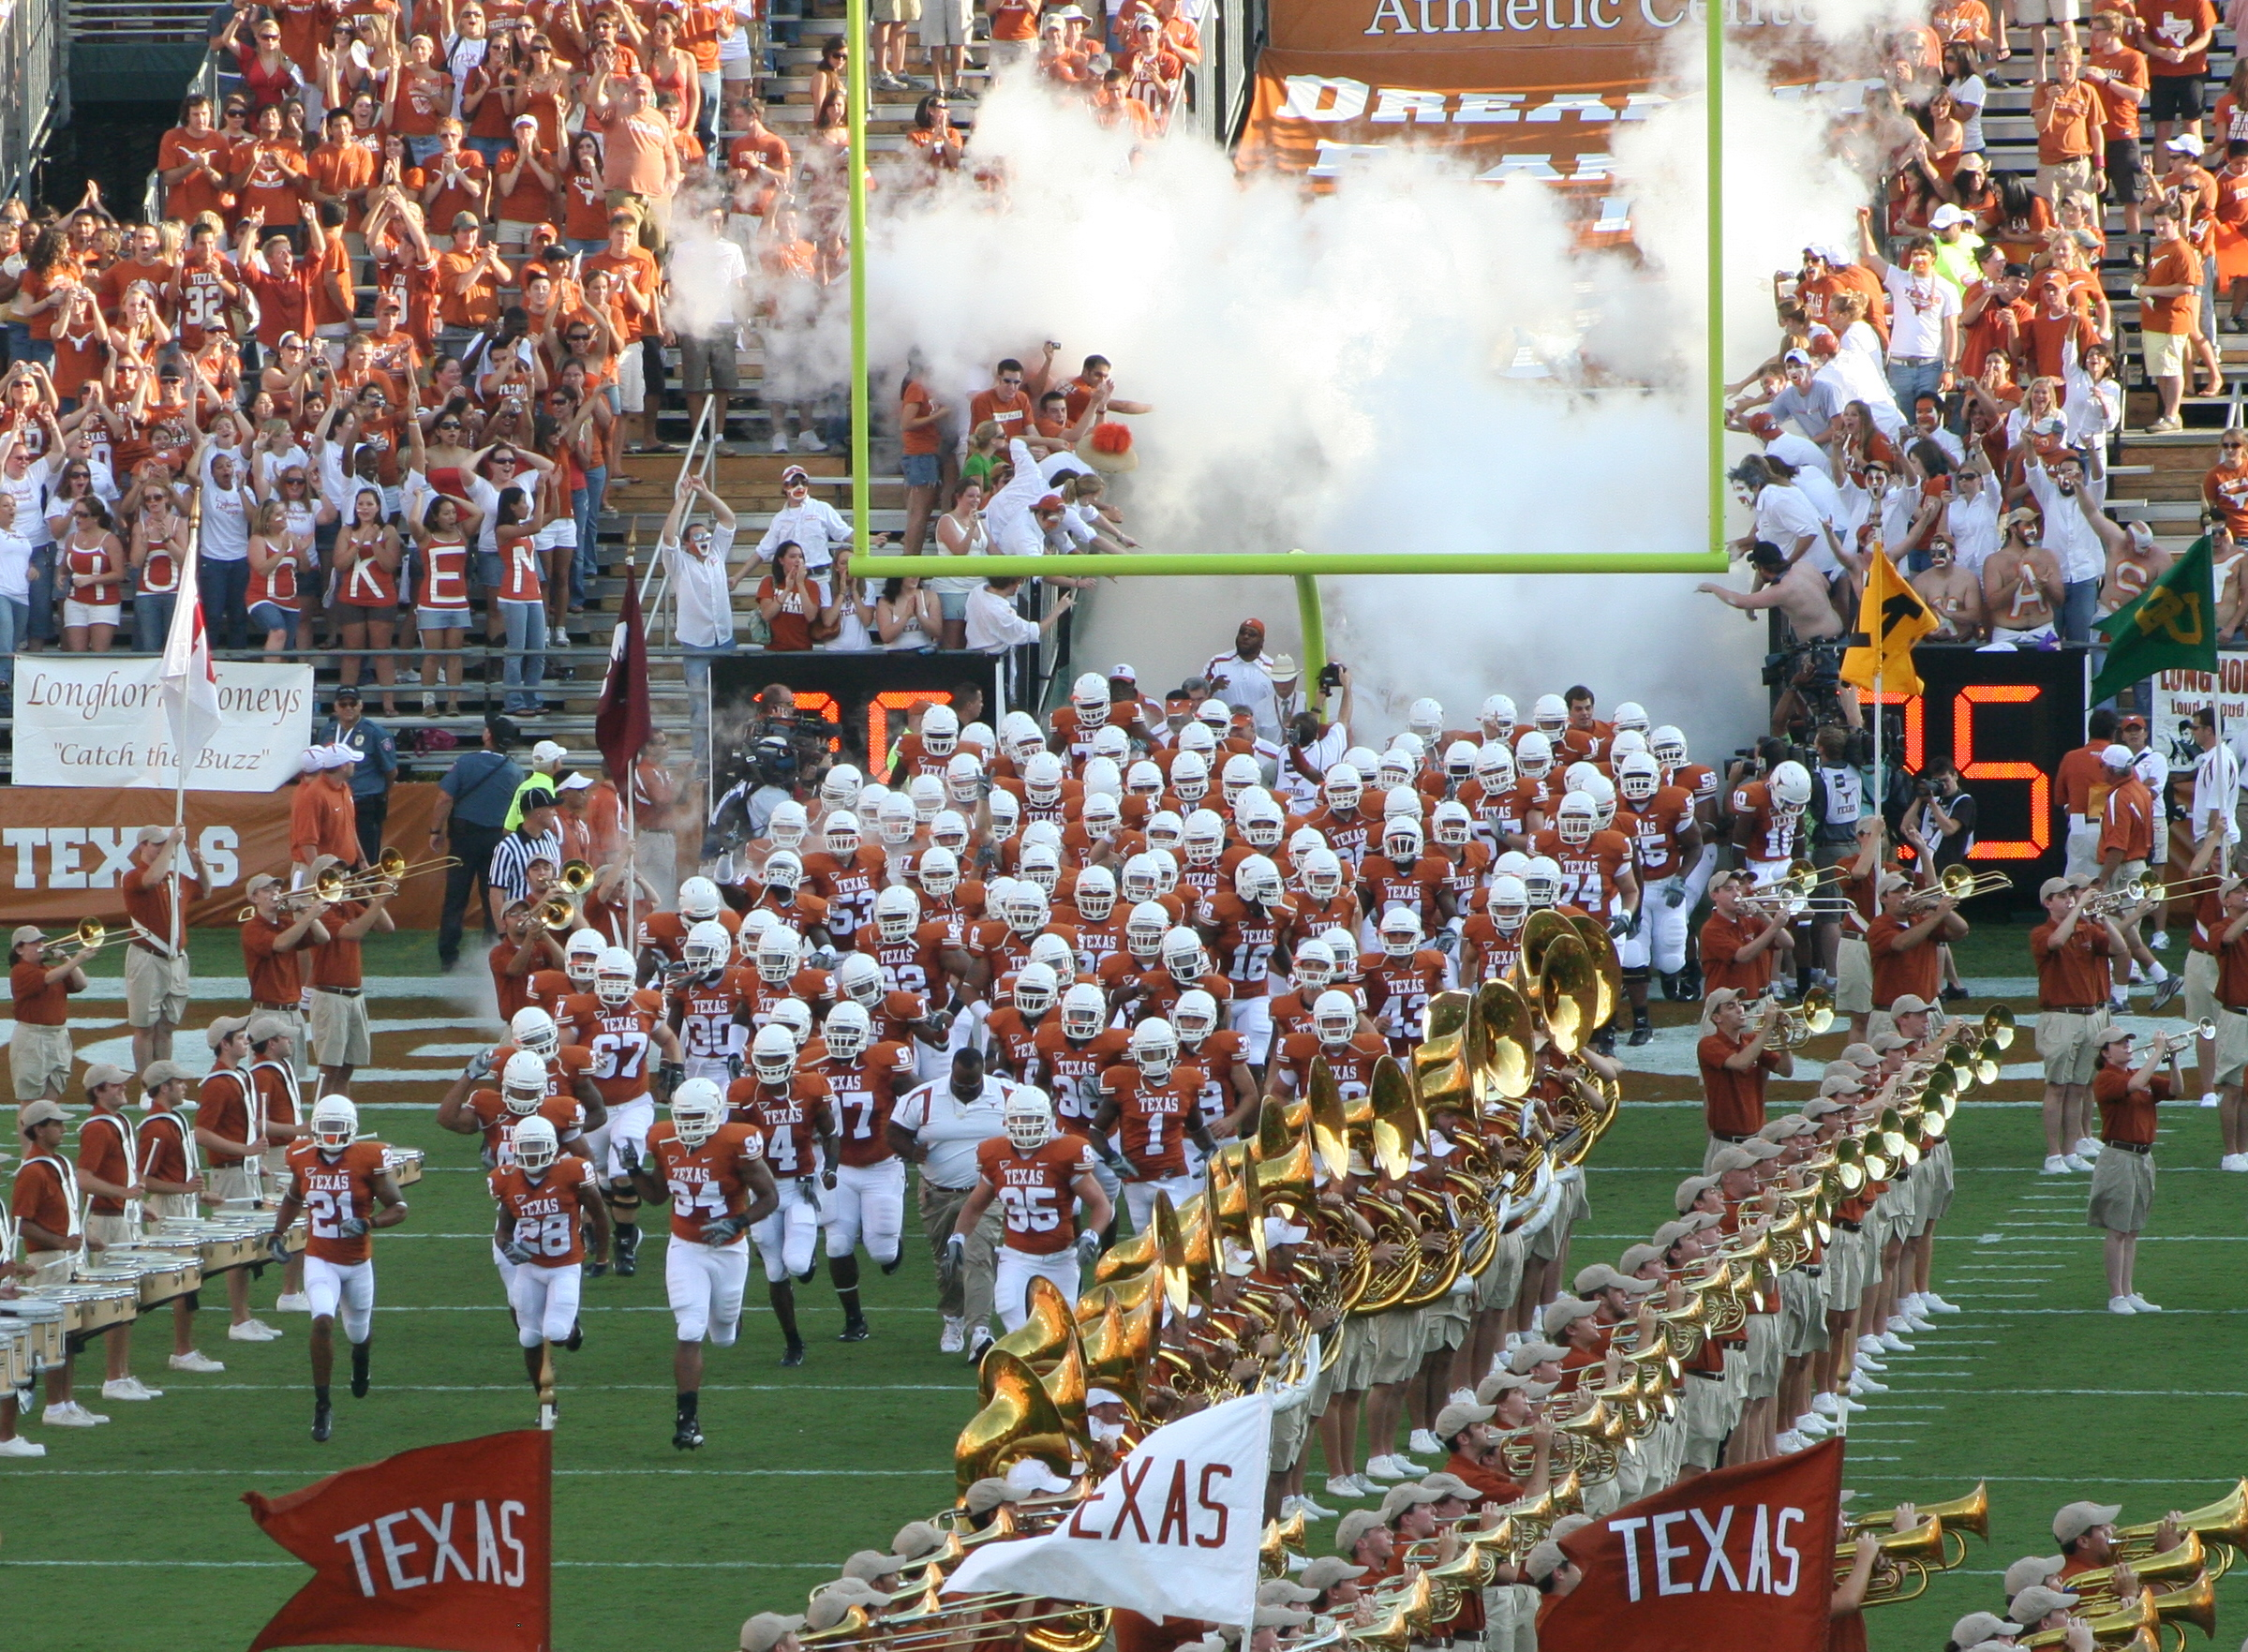 Texas Longhorns Football Team HD Wallpaper for your desktop background 2399x1763